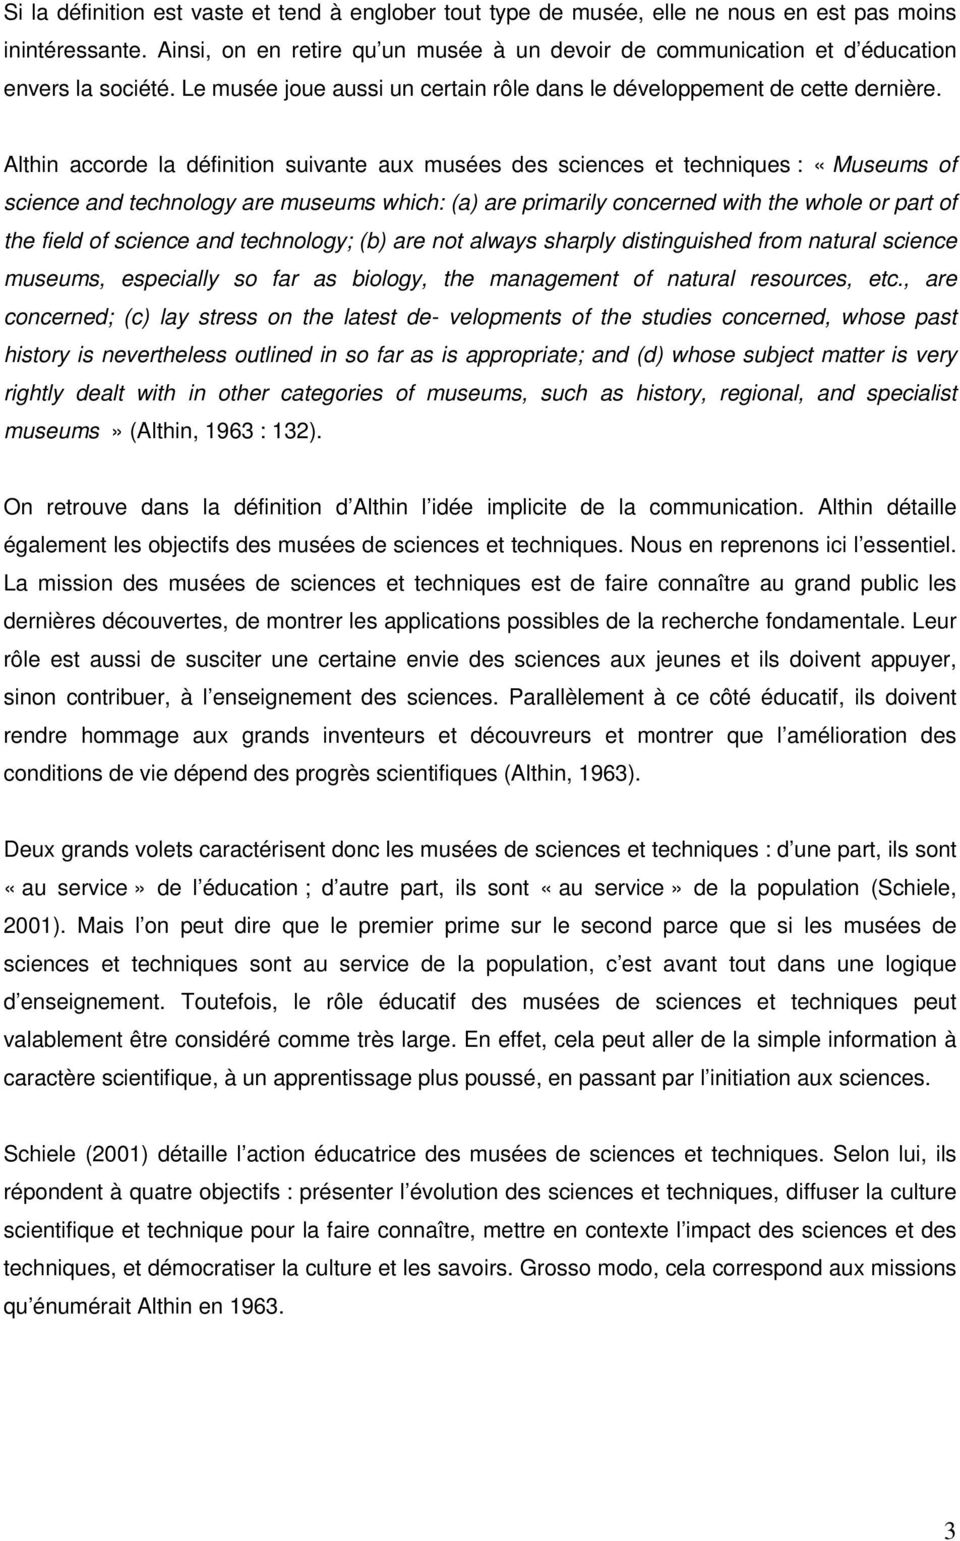 Althin accorde la définition suivante aux musées des sciences et techniques : «Museums of science and technology are museums which: (a) are primarily concerned with the whole or part of the field of